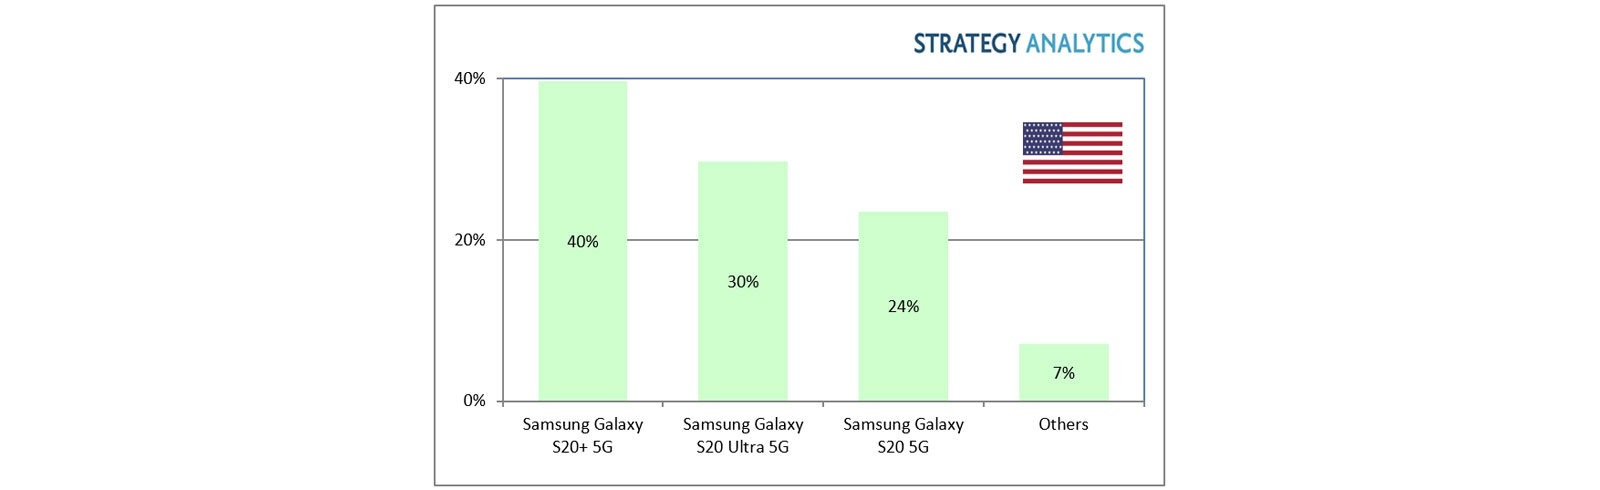 Strategy Analytics: Samsung dominated the US 5G market in Q1 of 2020